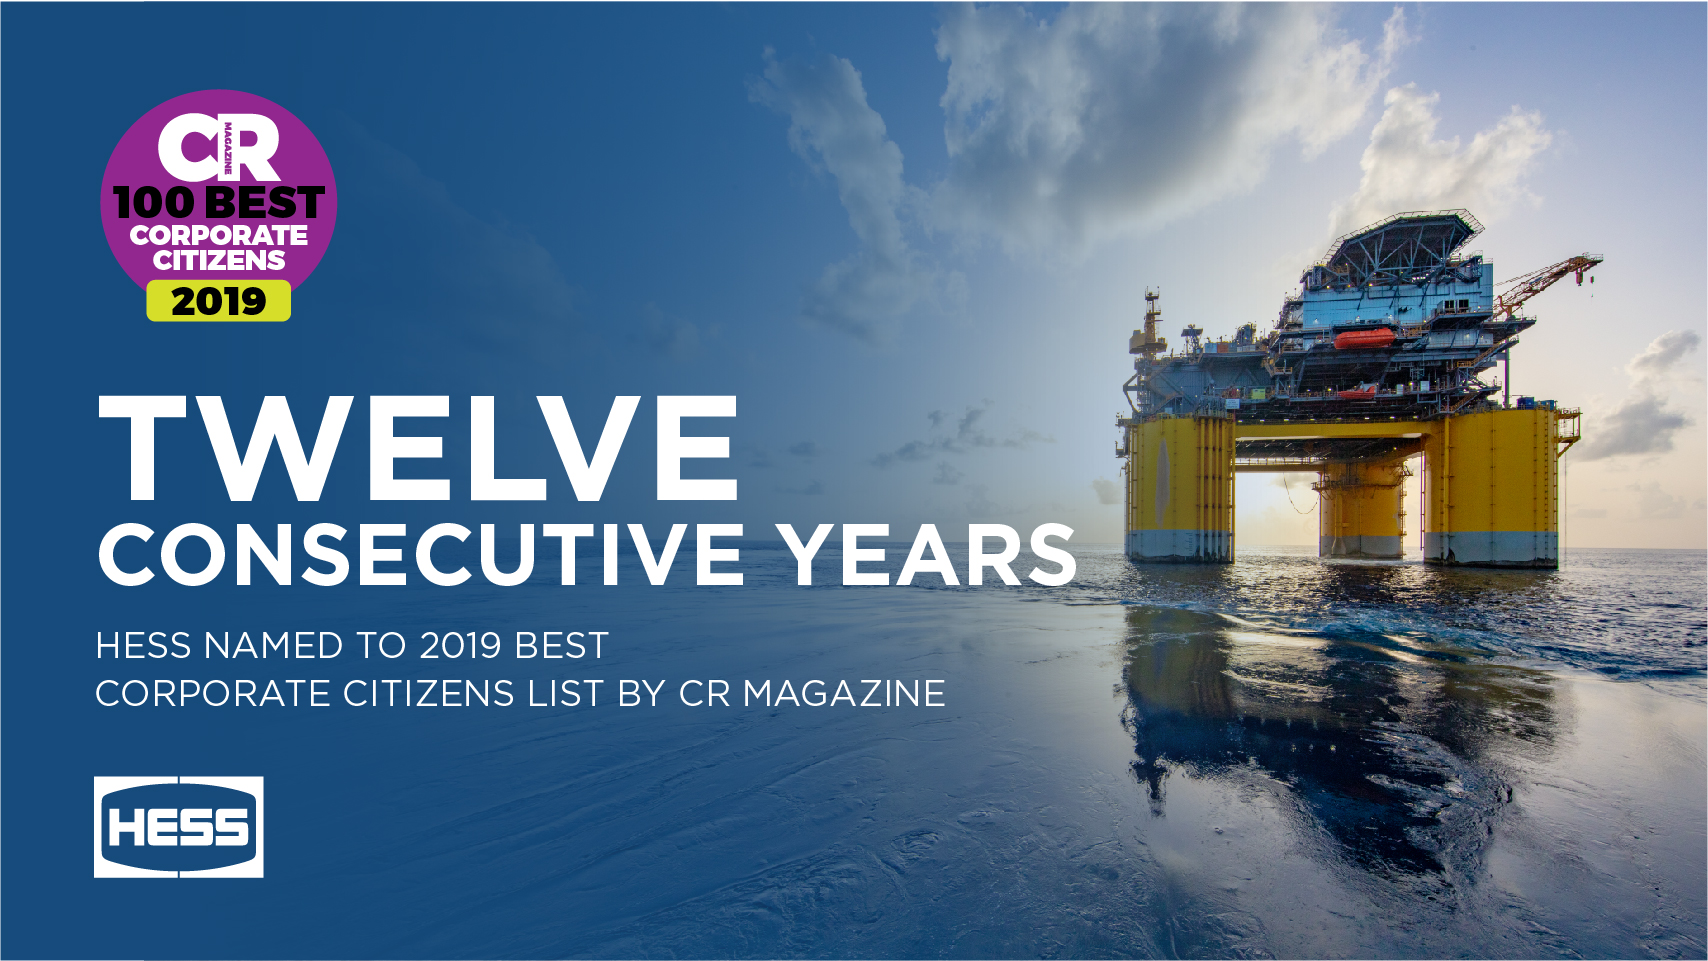 Hess Ranked on CR Magazine Best Corporate Citizens List 2019